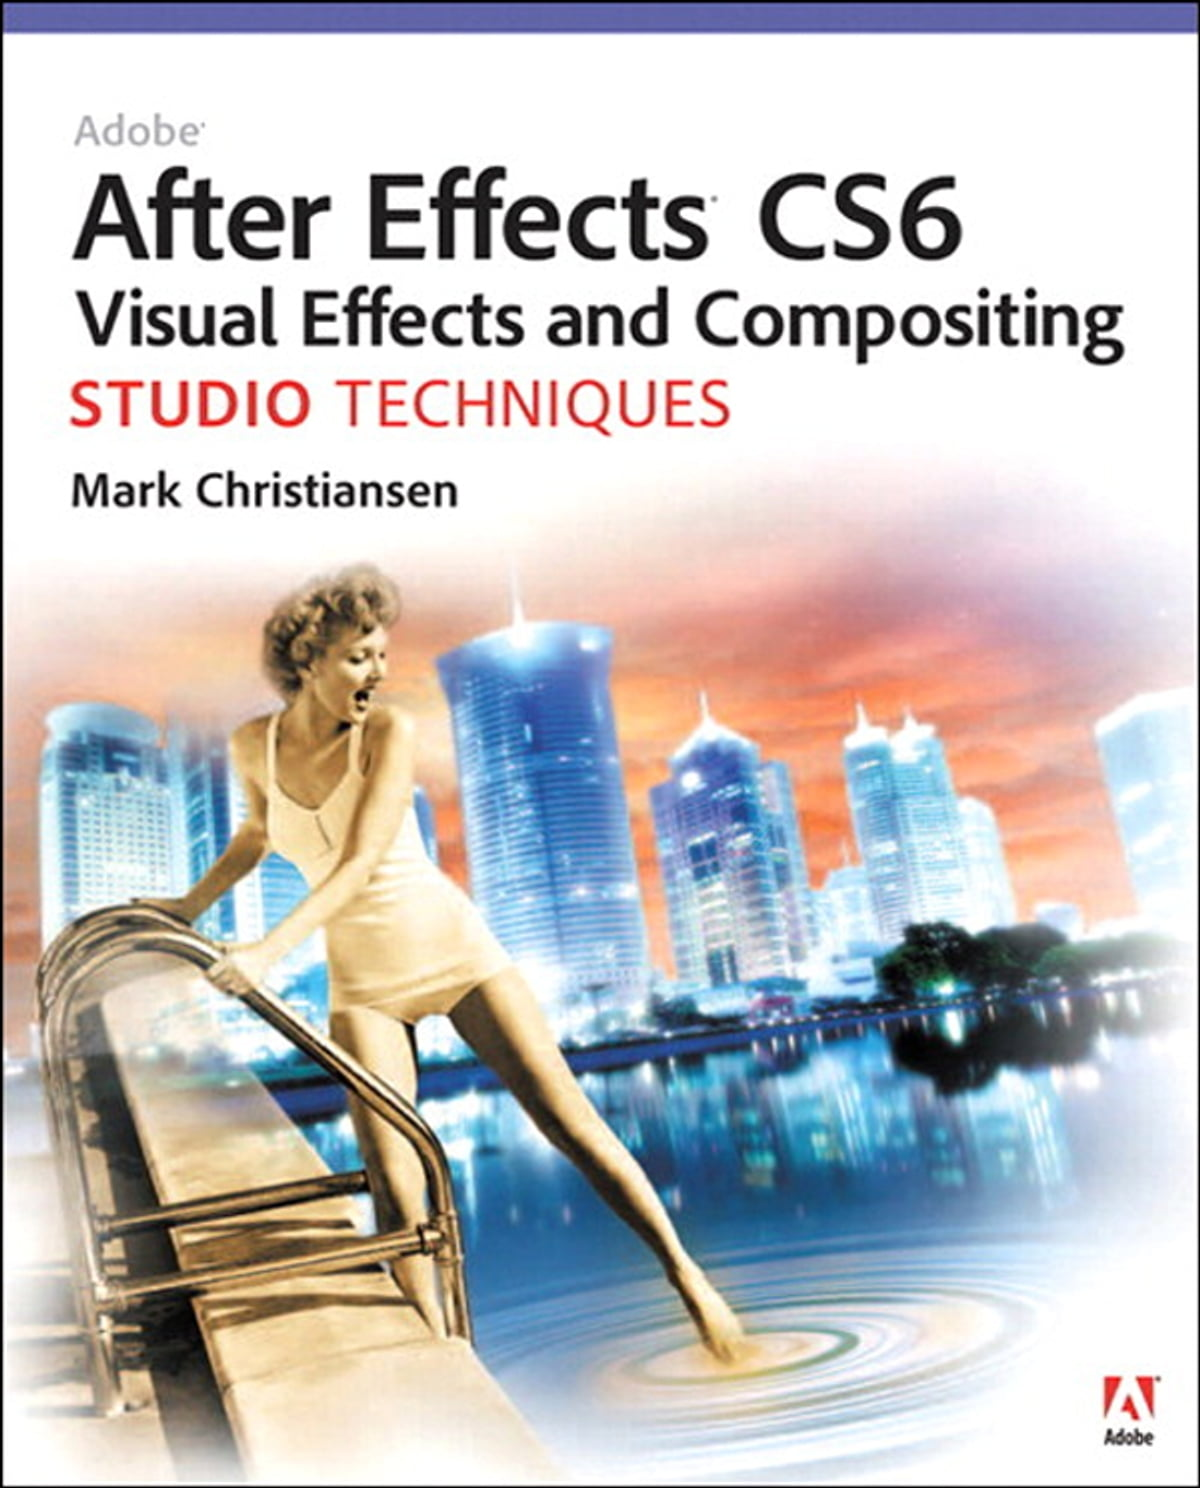 Adobe After Effects CS6 Visual Effects and Compositing Studio Techniques  eBook by Mark Christiansen - 9780133040005   Rakuten Kobo